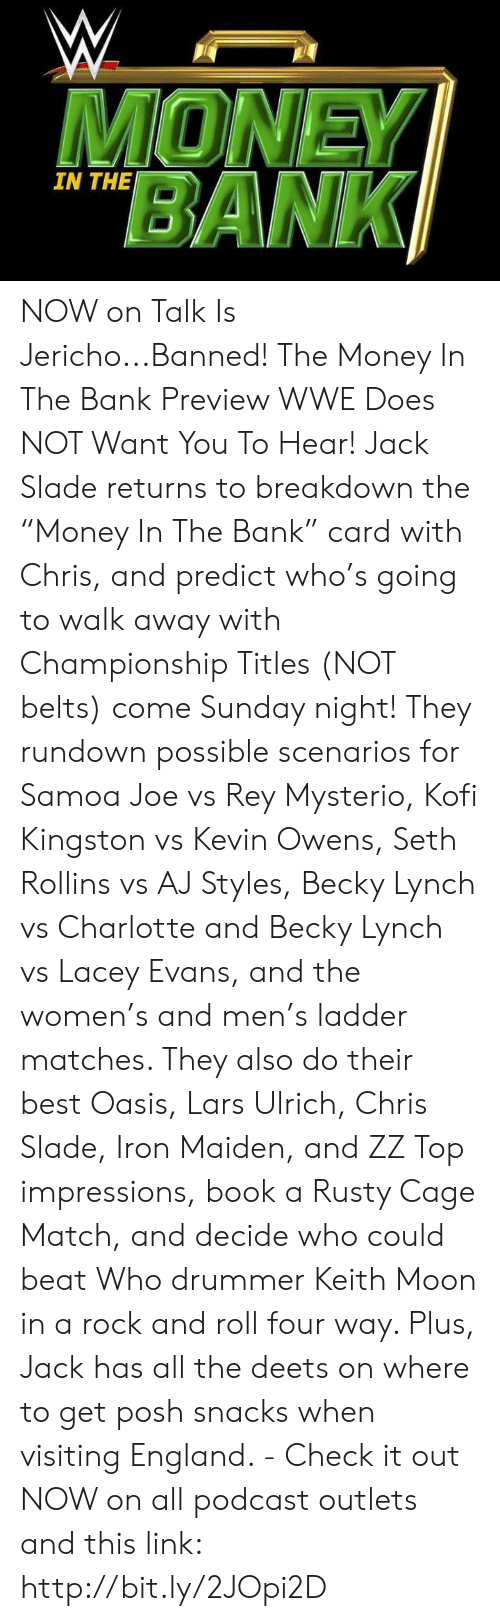 """Aj Styles: MONE  BANK  IN THE NOW on Talk Is Jericho...Banned! The Money In The Bank Preview WWE Does NOT Want You To Hear! Jack Slade returns to breakdown the """"Money In The Bank"""" card with Chris, and predict who's going to walk away with Championship Titles (NOT belts) come Sunday night! They  rundown possible scenarios for Samoa Joe vs Rey Mysterio, Kofi Kingston vs Kevin Owens, Seth Rollins vs AJ Styles, Becky Lynch vs Charlotte and Becky Lynch vs Lacey Evans, and the women's and men's ladder matches.  They also do their best Oasis, Lars Ulrich, Chris Slade, Iron Maiden, and ZZ Top impressions, book a Rusty Cage Match, and decide who could beat Who drummer Keith Moon in a rock and roll four way. Plus, Jack has all the deets on where to get posh snacks when visiting England. - Check it out NOW on all podcast outlets and this link: http://bit.ly/2JOpi2D"""